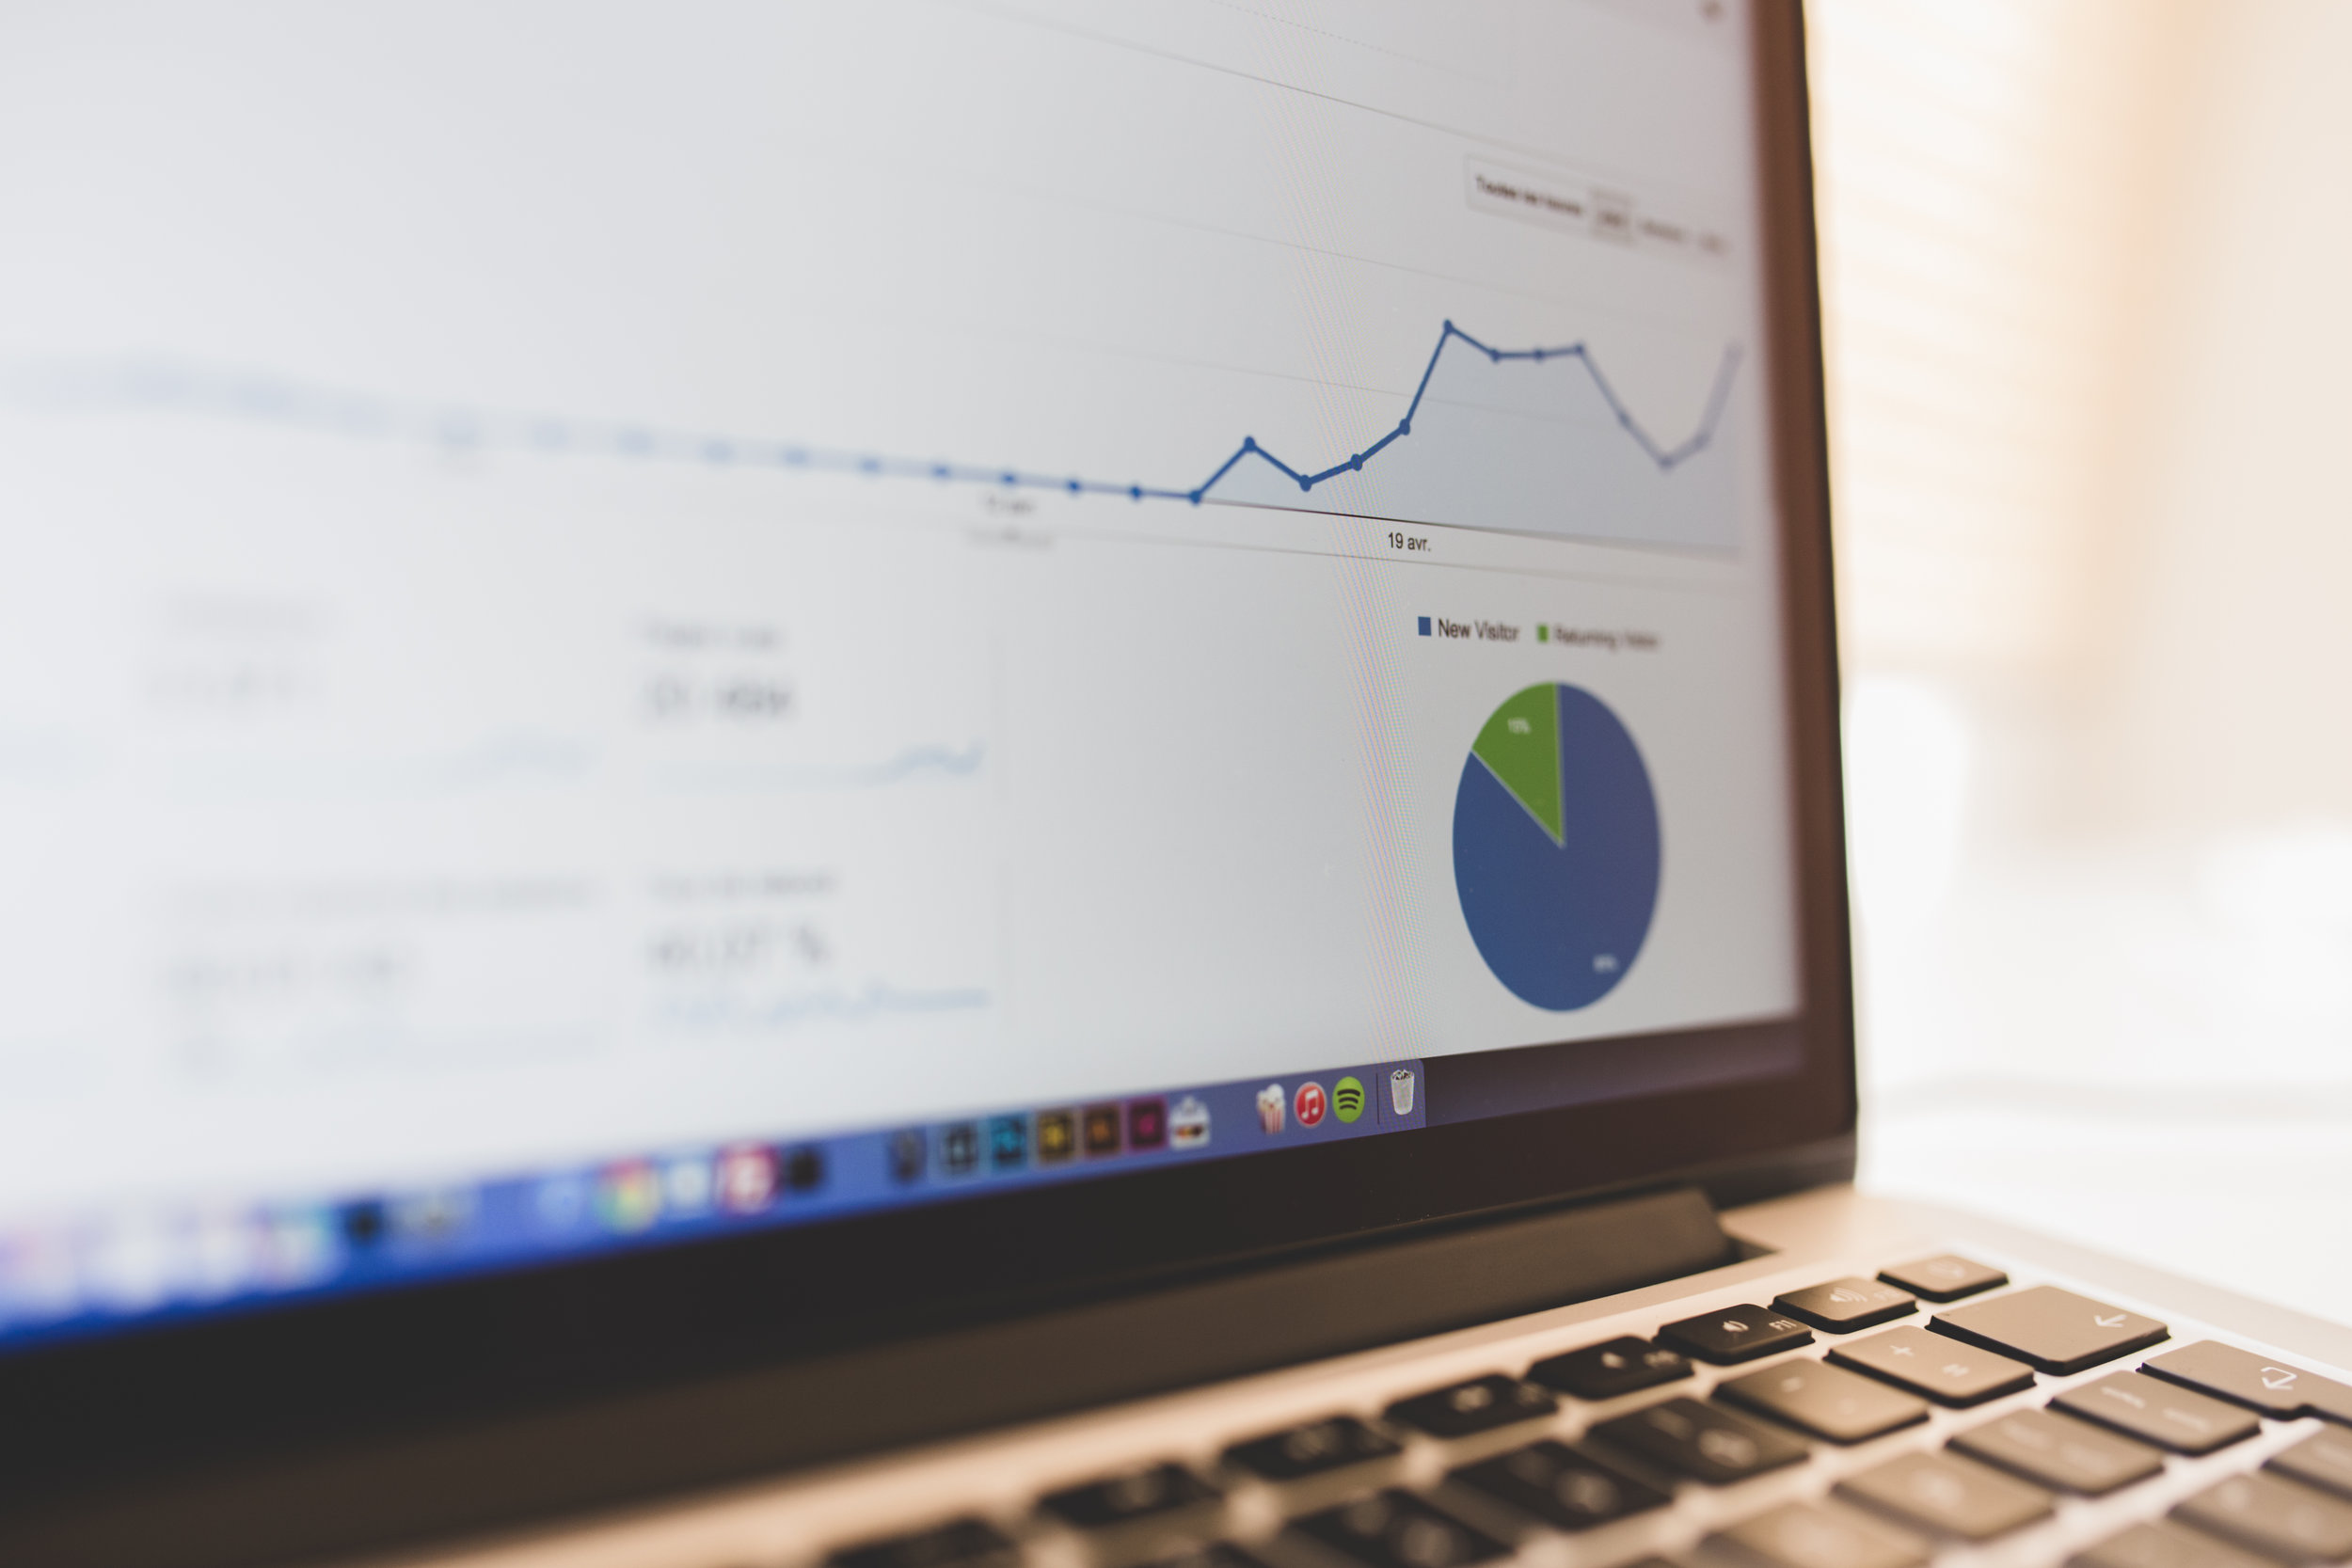 Impact Measurement & Evaluation - Tribeca's team designs impact measurement frameworks and carries out impartial measurement and evaluation to inform your organisations strategy and ensure programmatic interventions are aligned with the investment thesis, leading to desired outcomes.